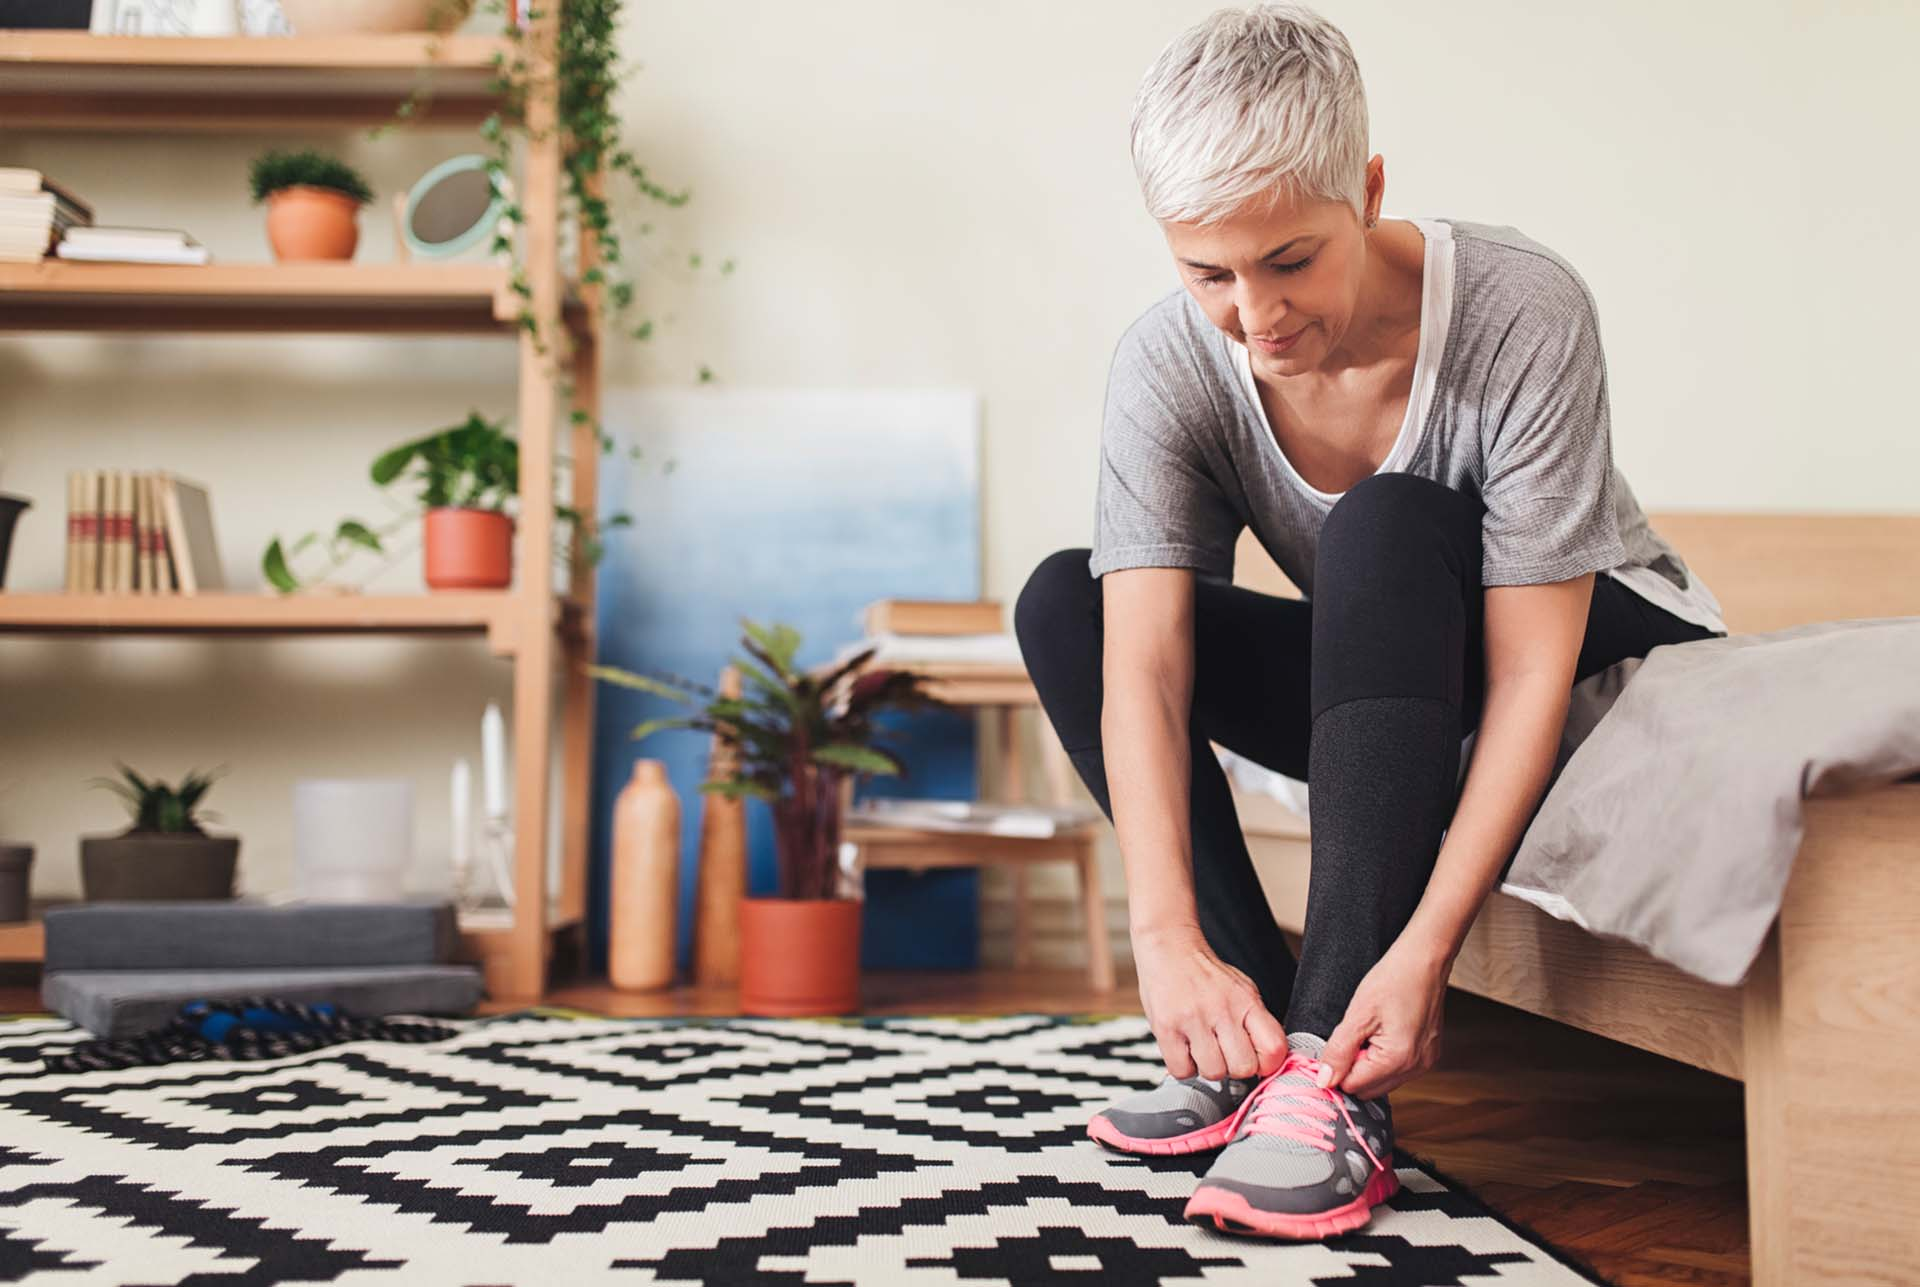 Caucasian senior woman tying the laces on her running sneakers.